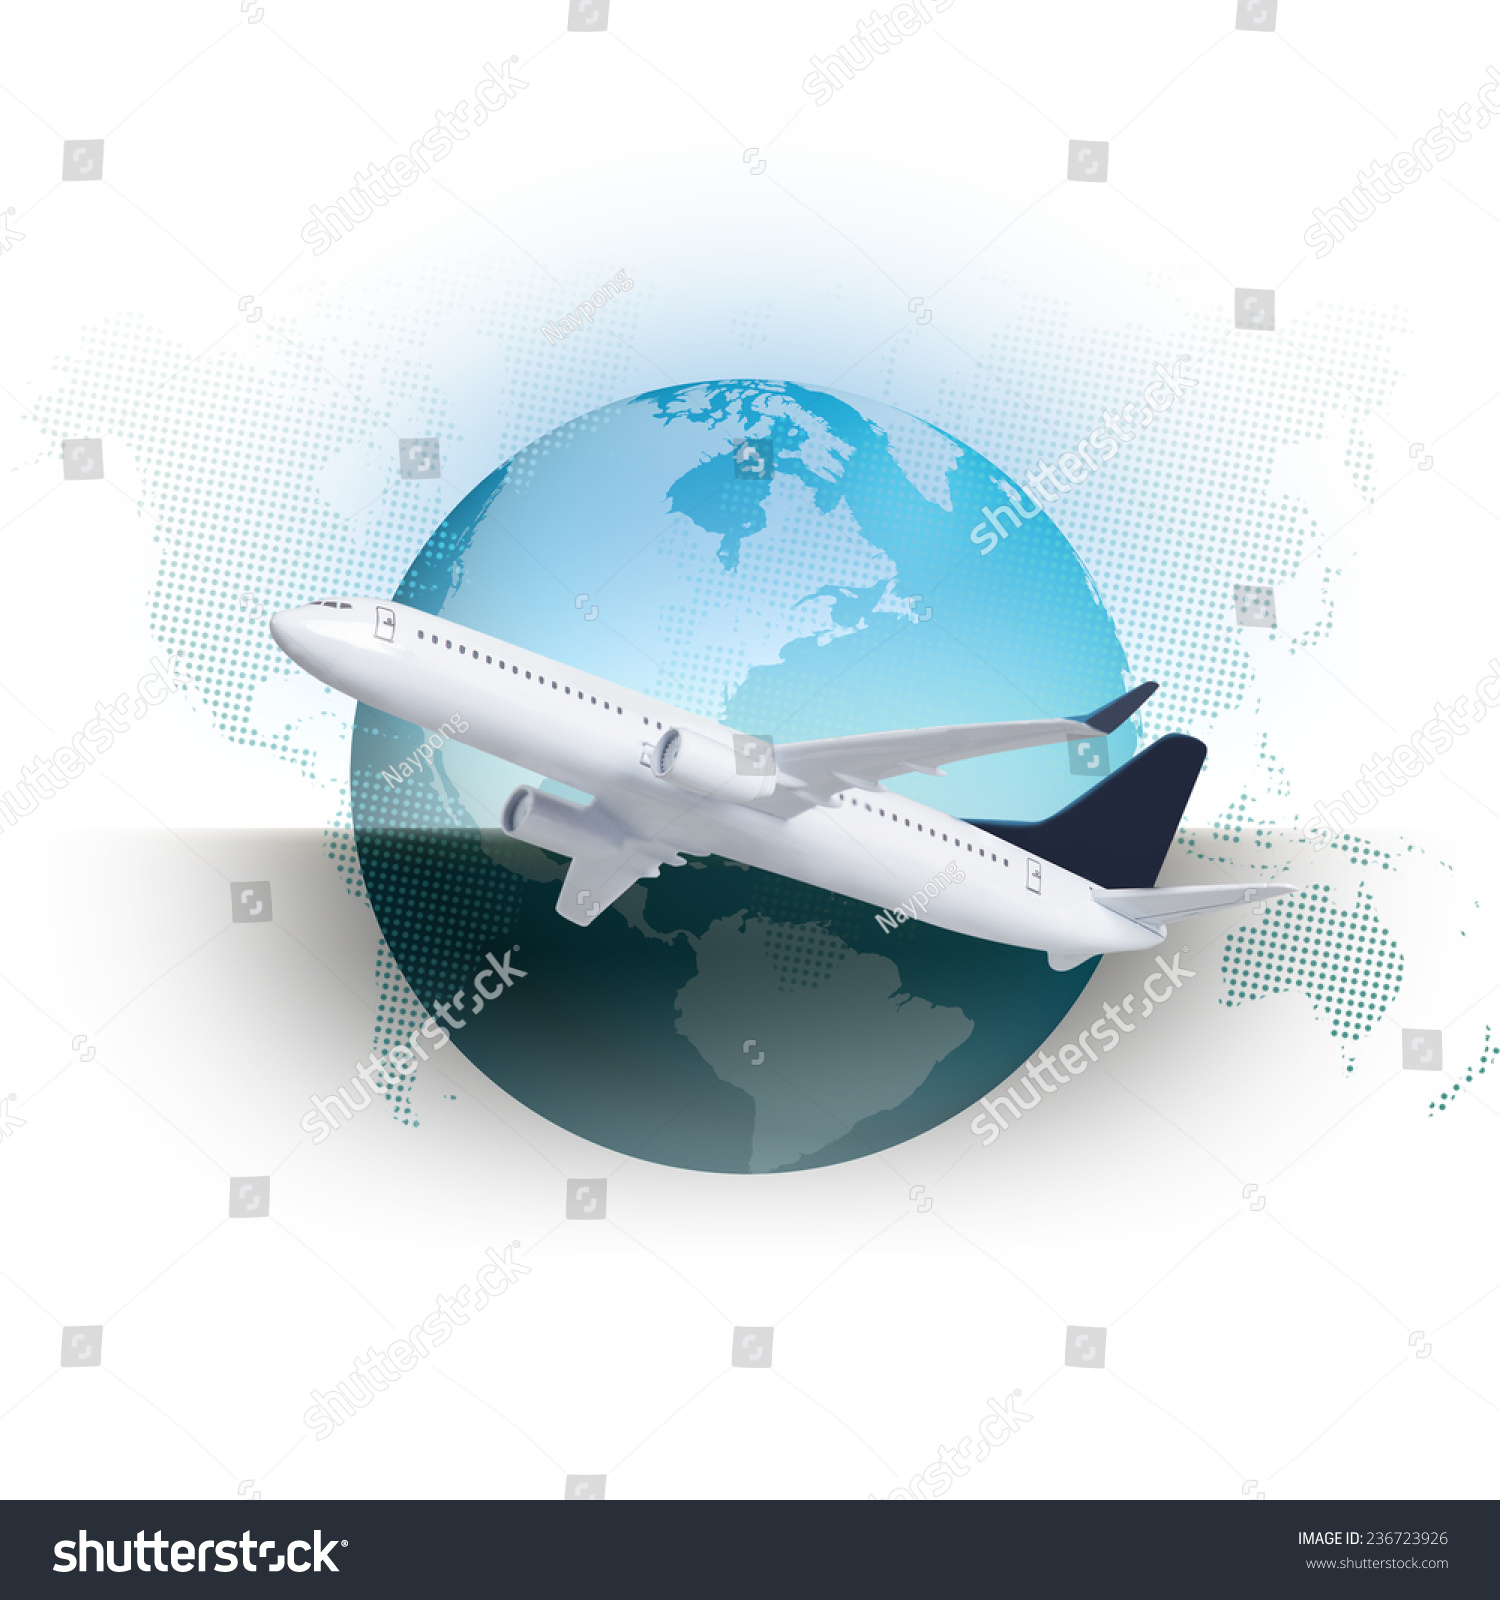 Airplane world map globe icon stock photo 236723926 shutterstock airplane with world map and globe icon gumiabroncs Gallery